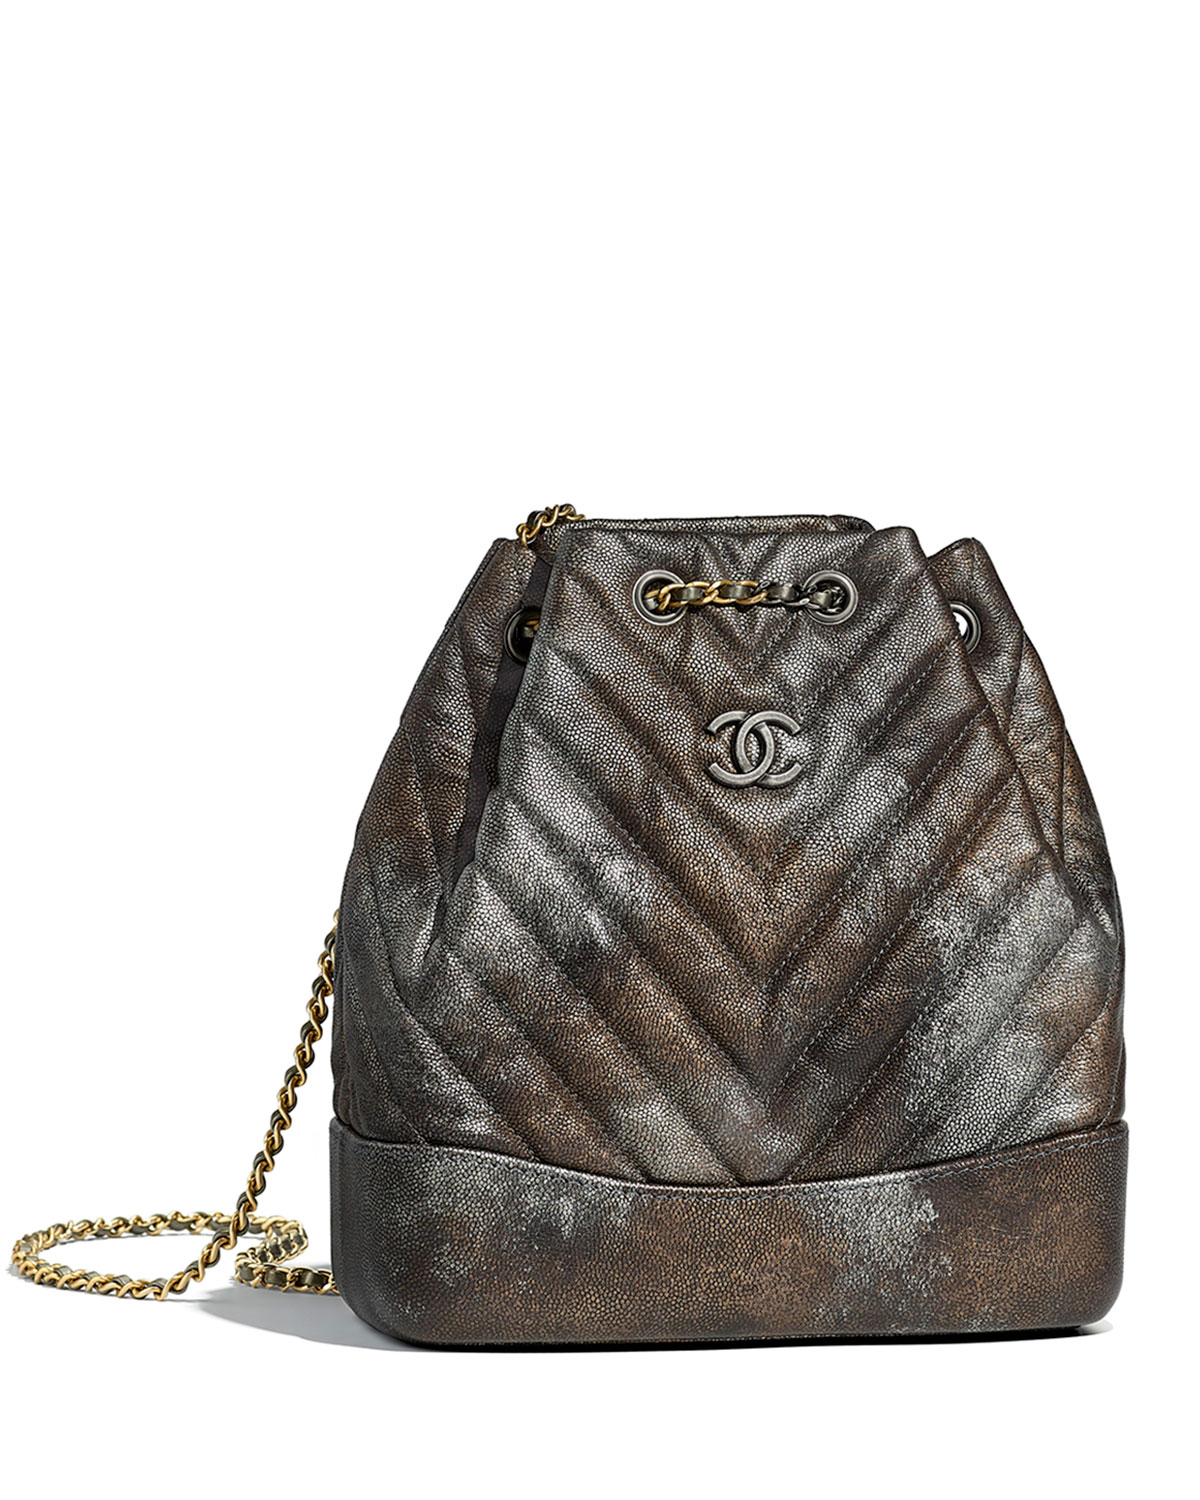 99813bb7104315 CHANEL CHANEL'S GABRIELLE SMALL BACKPACK | Neiman Marcus